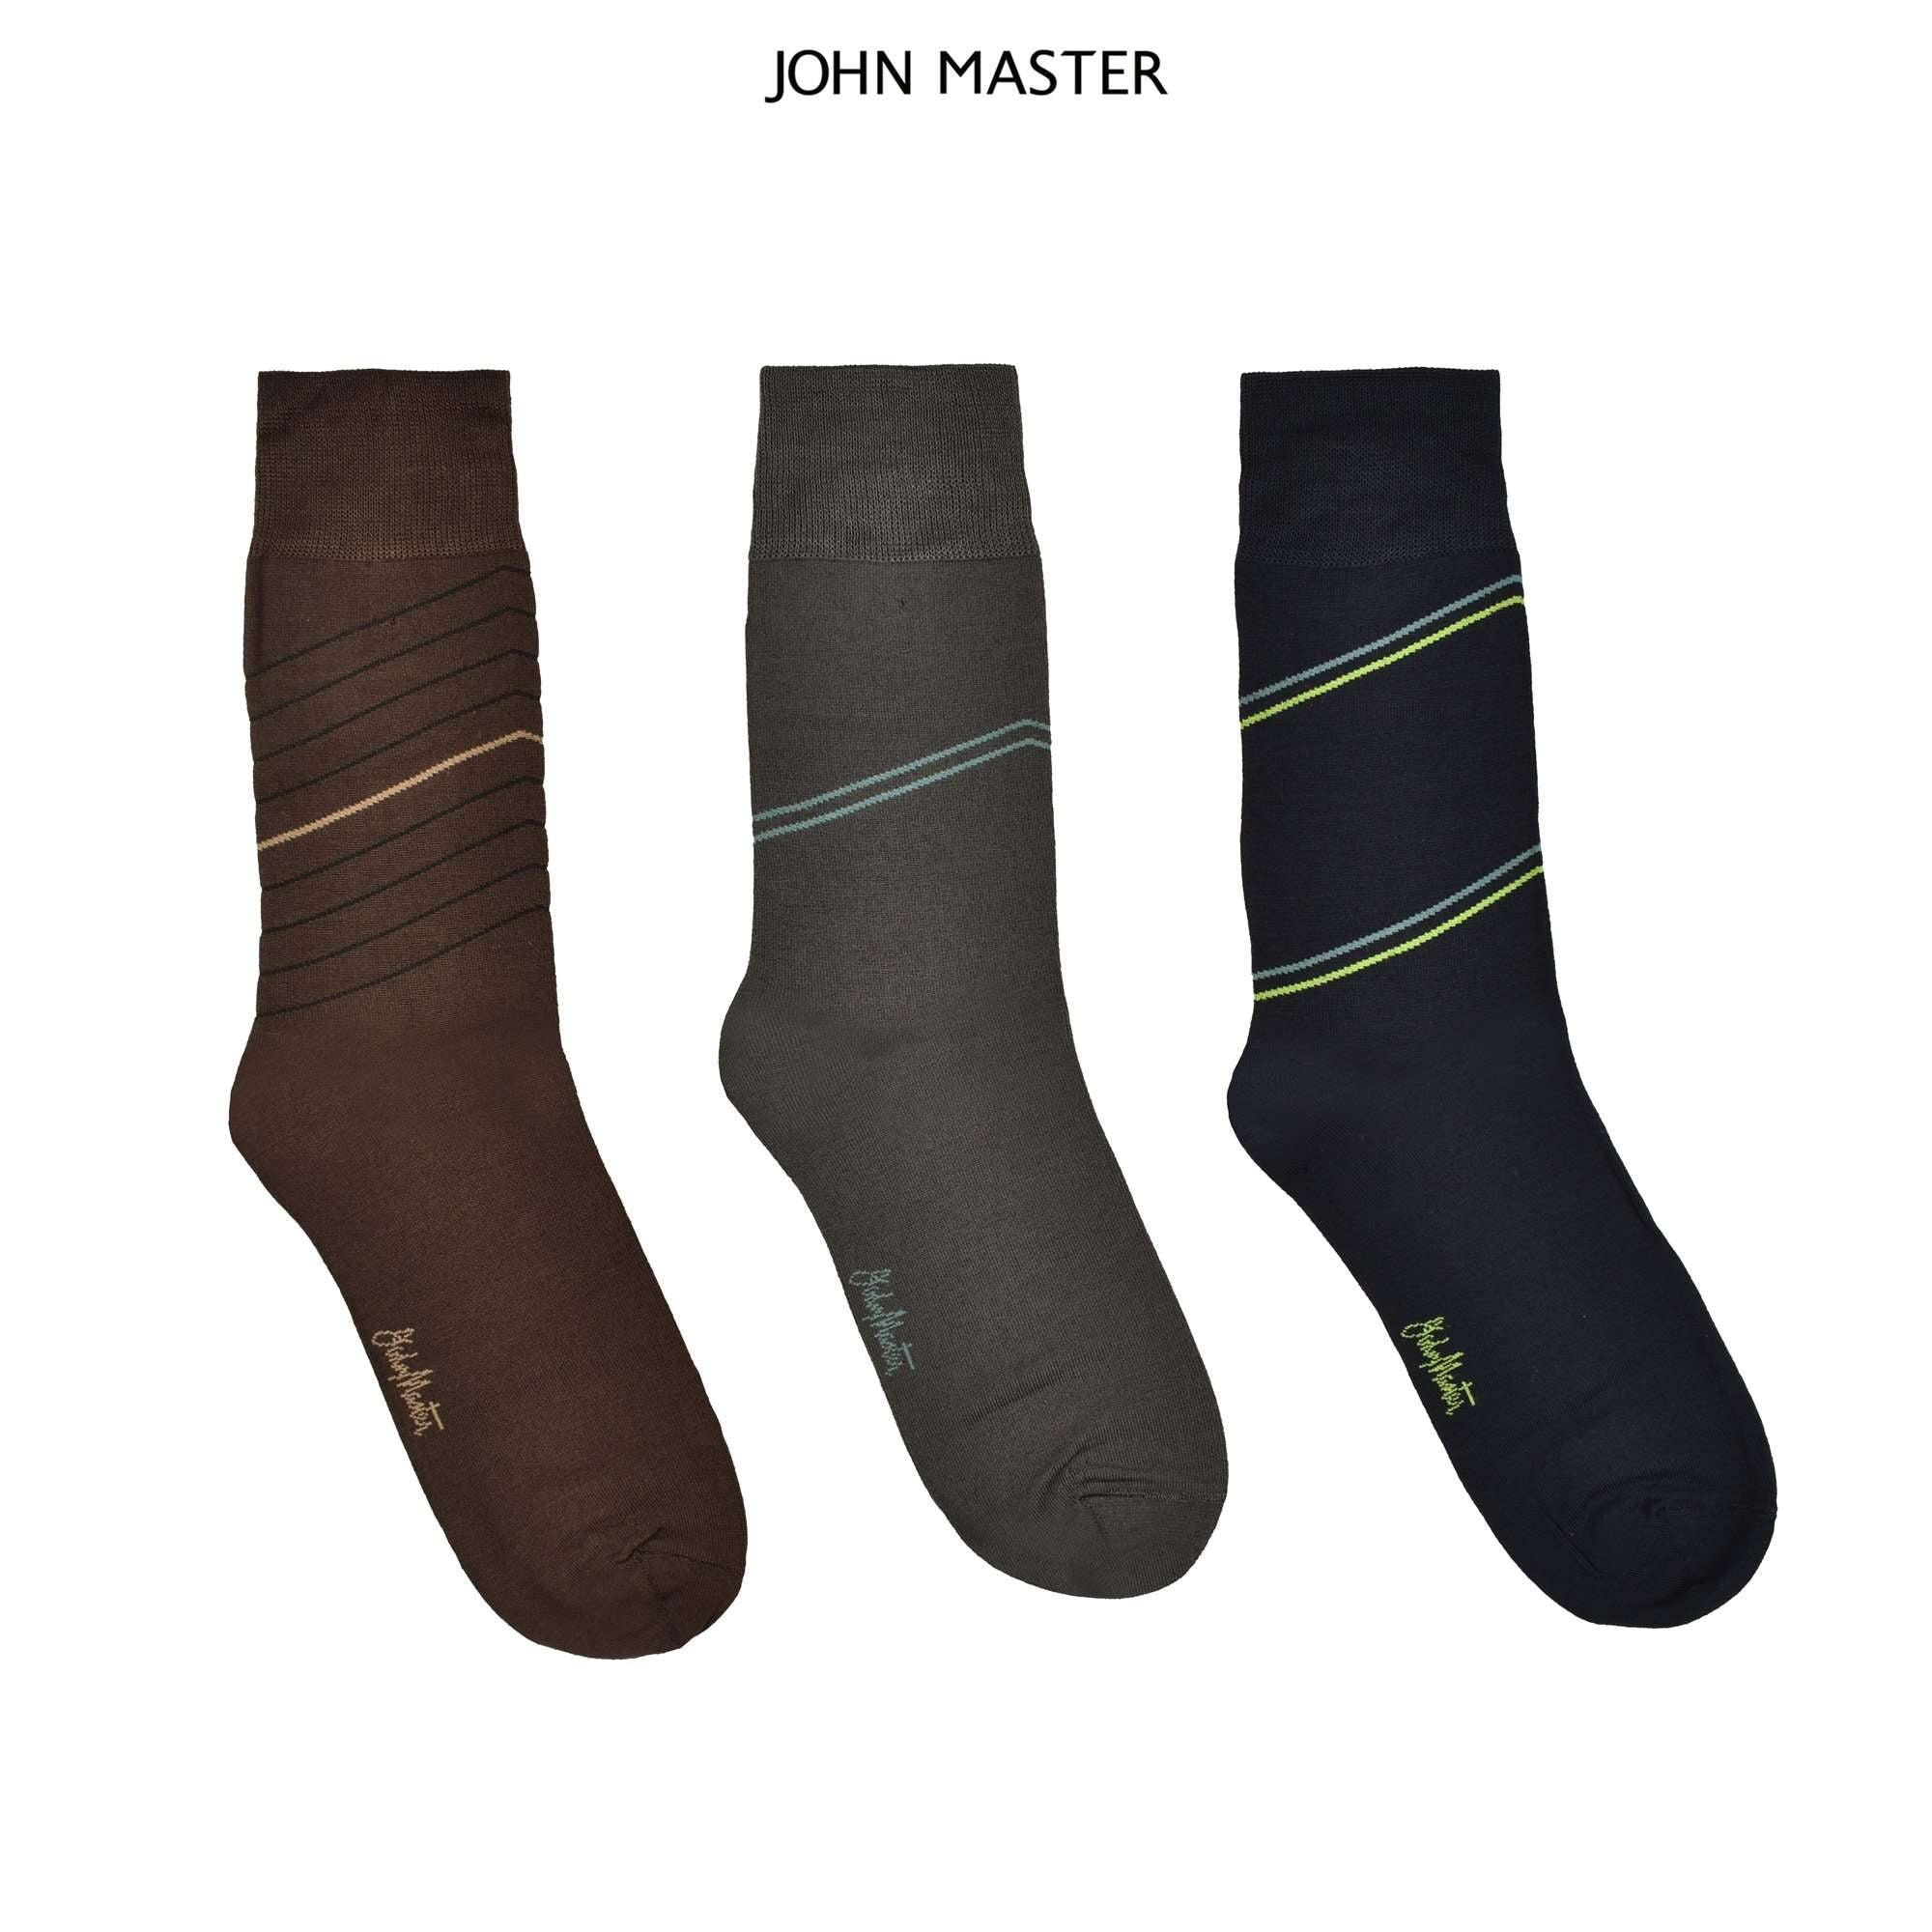 John Master Mercerized Spandex Socks 2053440 : Buy John Master online at CMG.MY